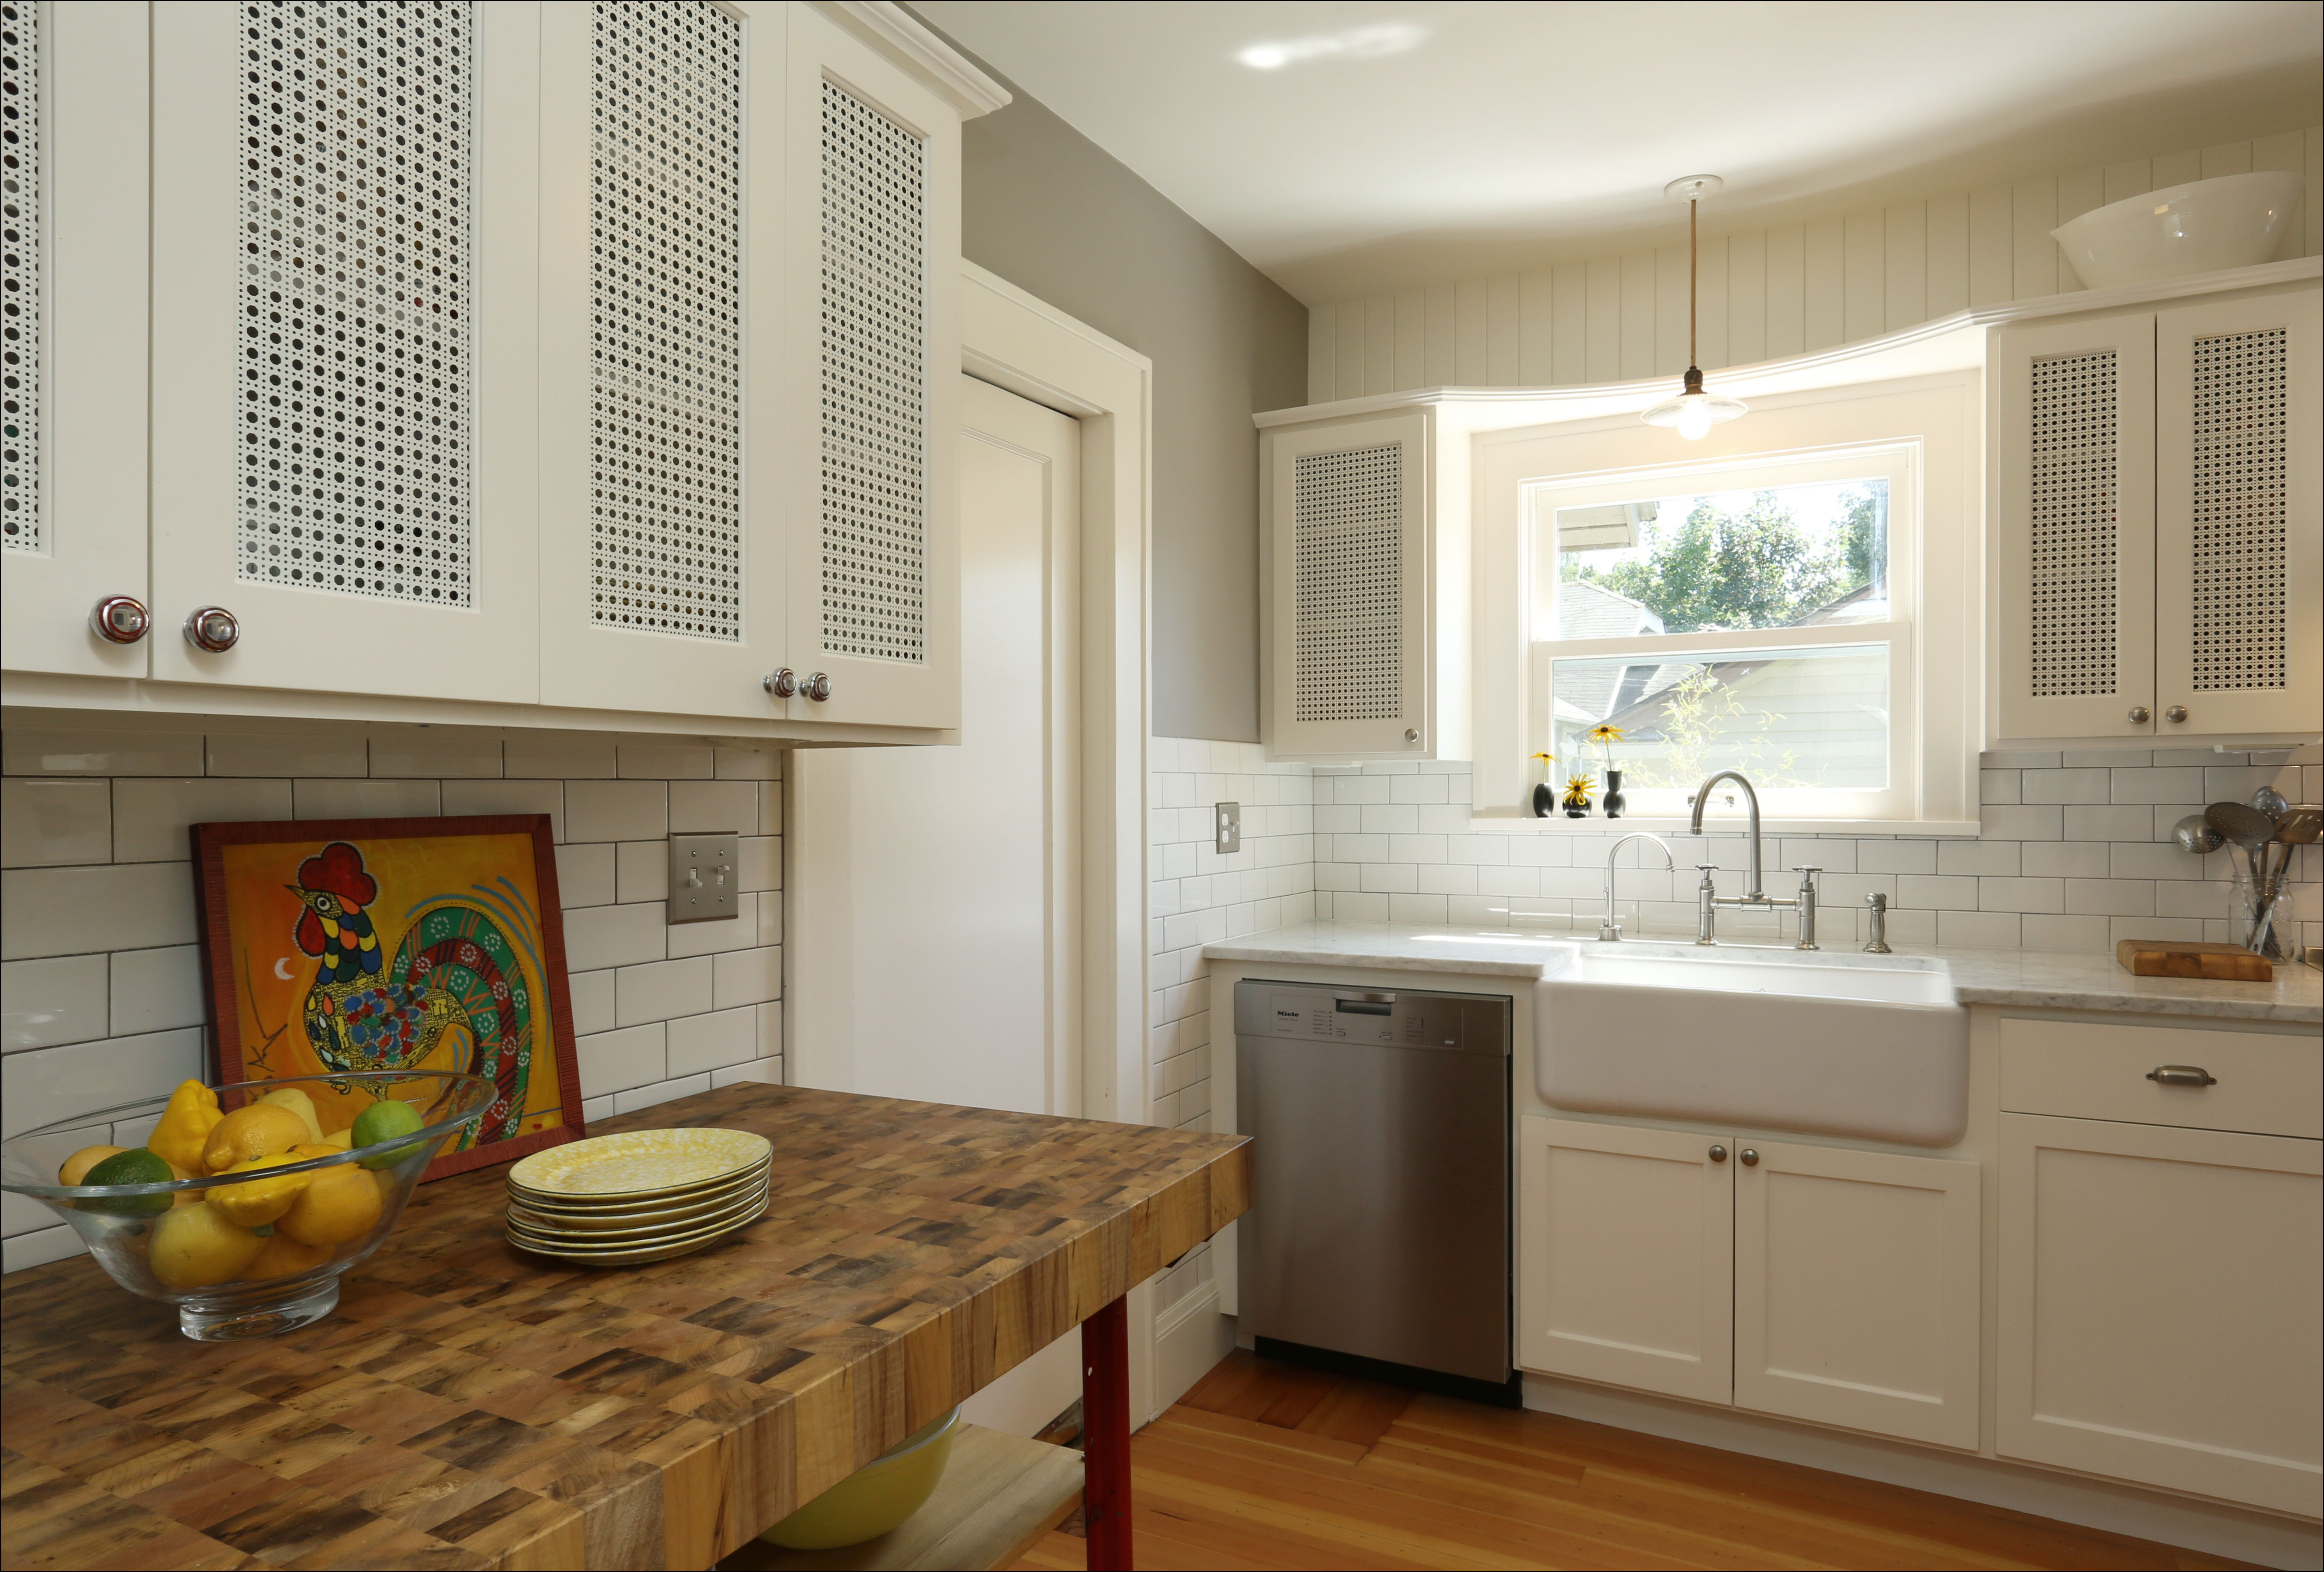 Kitchen Designers Portland Oregon Rose_Finkelman_1925_Kitchen_A_5_P  House  Pinterest  Perforated